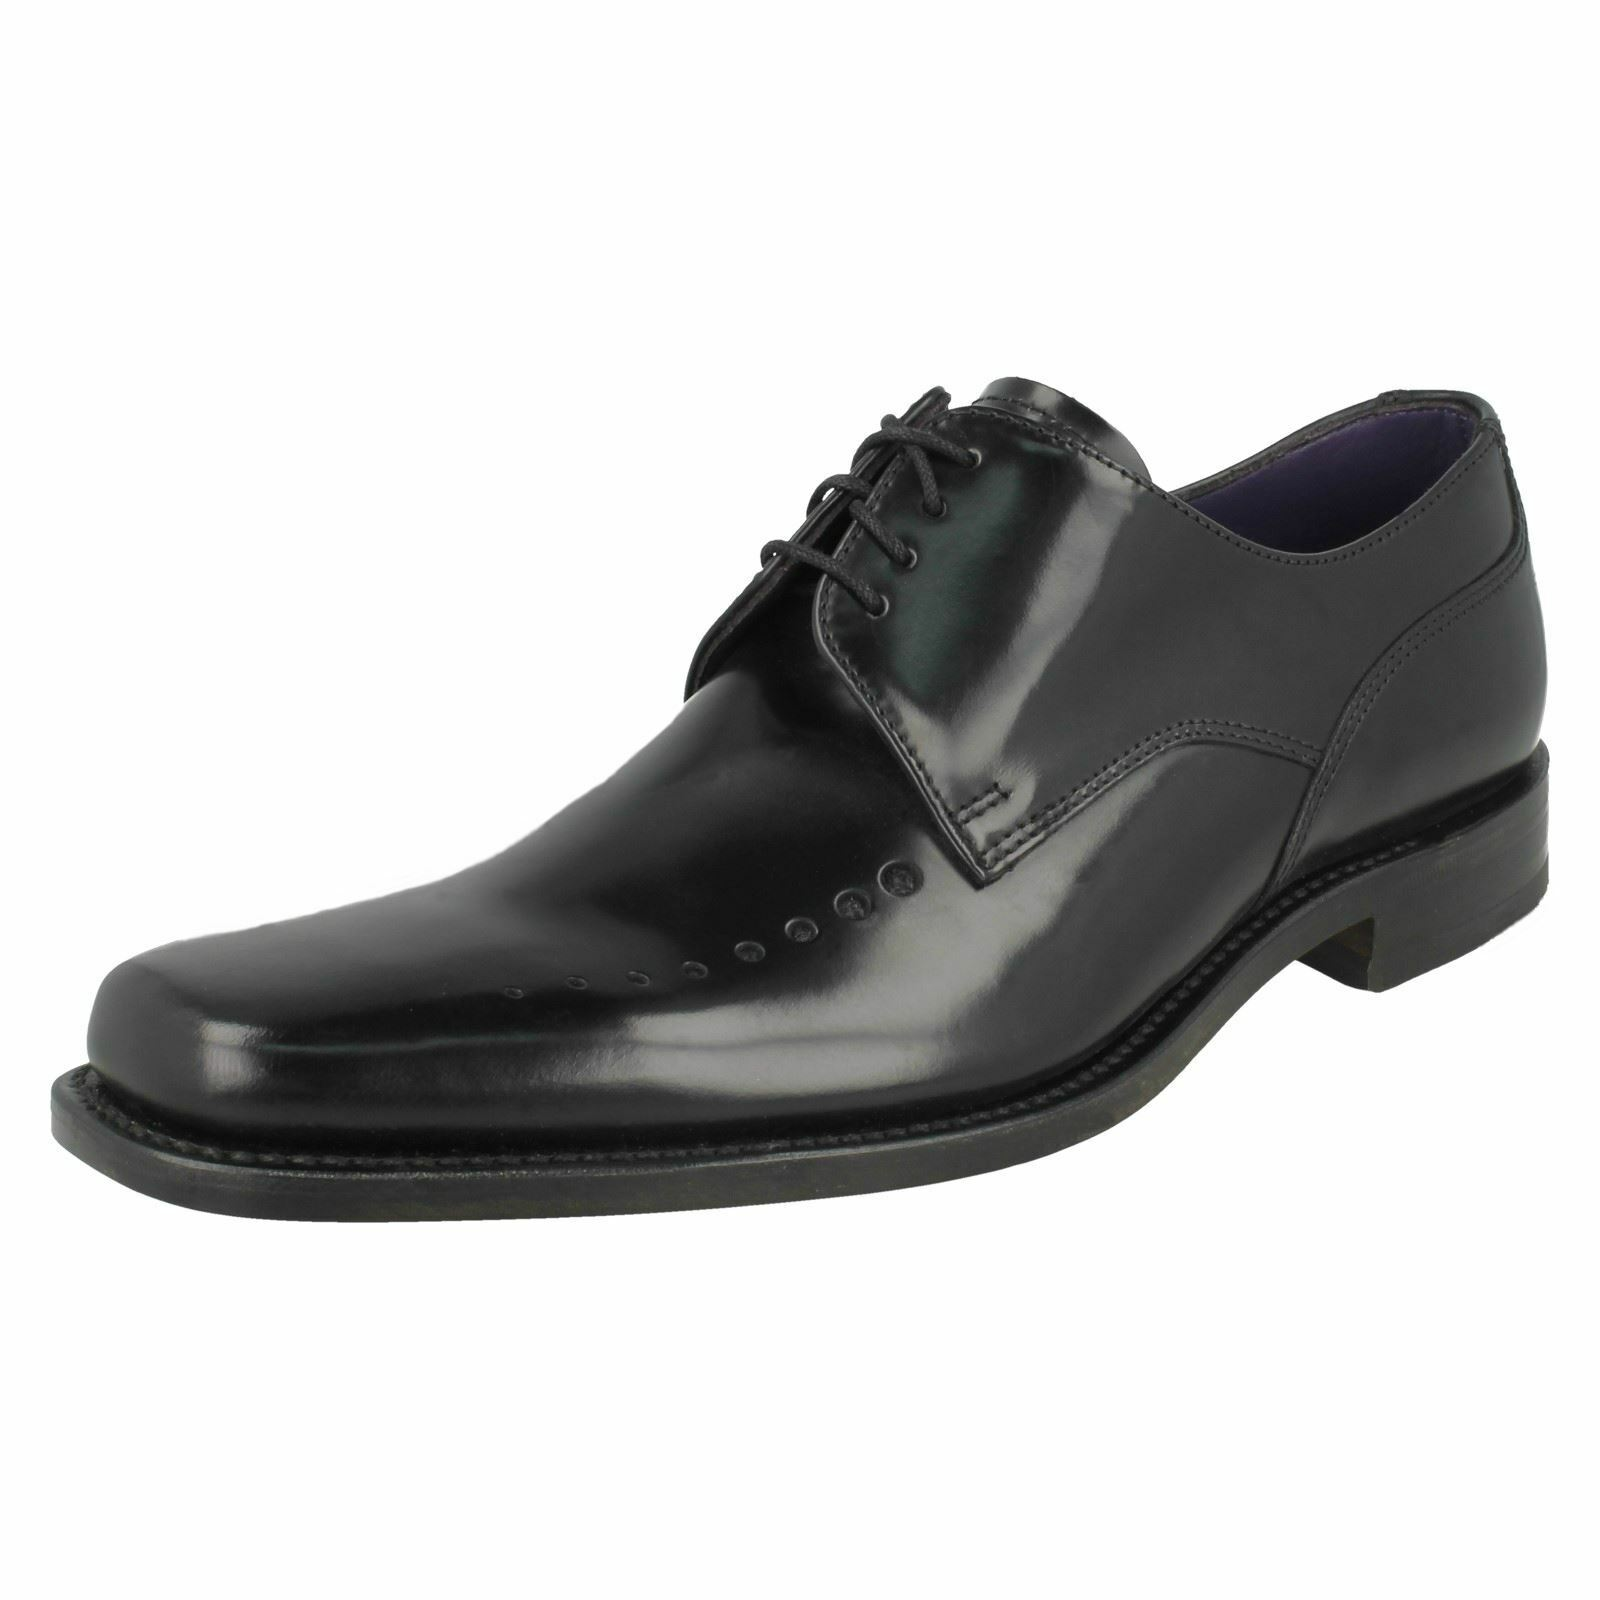 Mens Loake Smart Polished Leather Lace Up Shoes 'Poseidon'